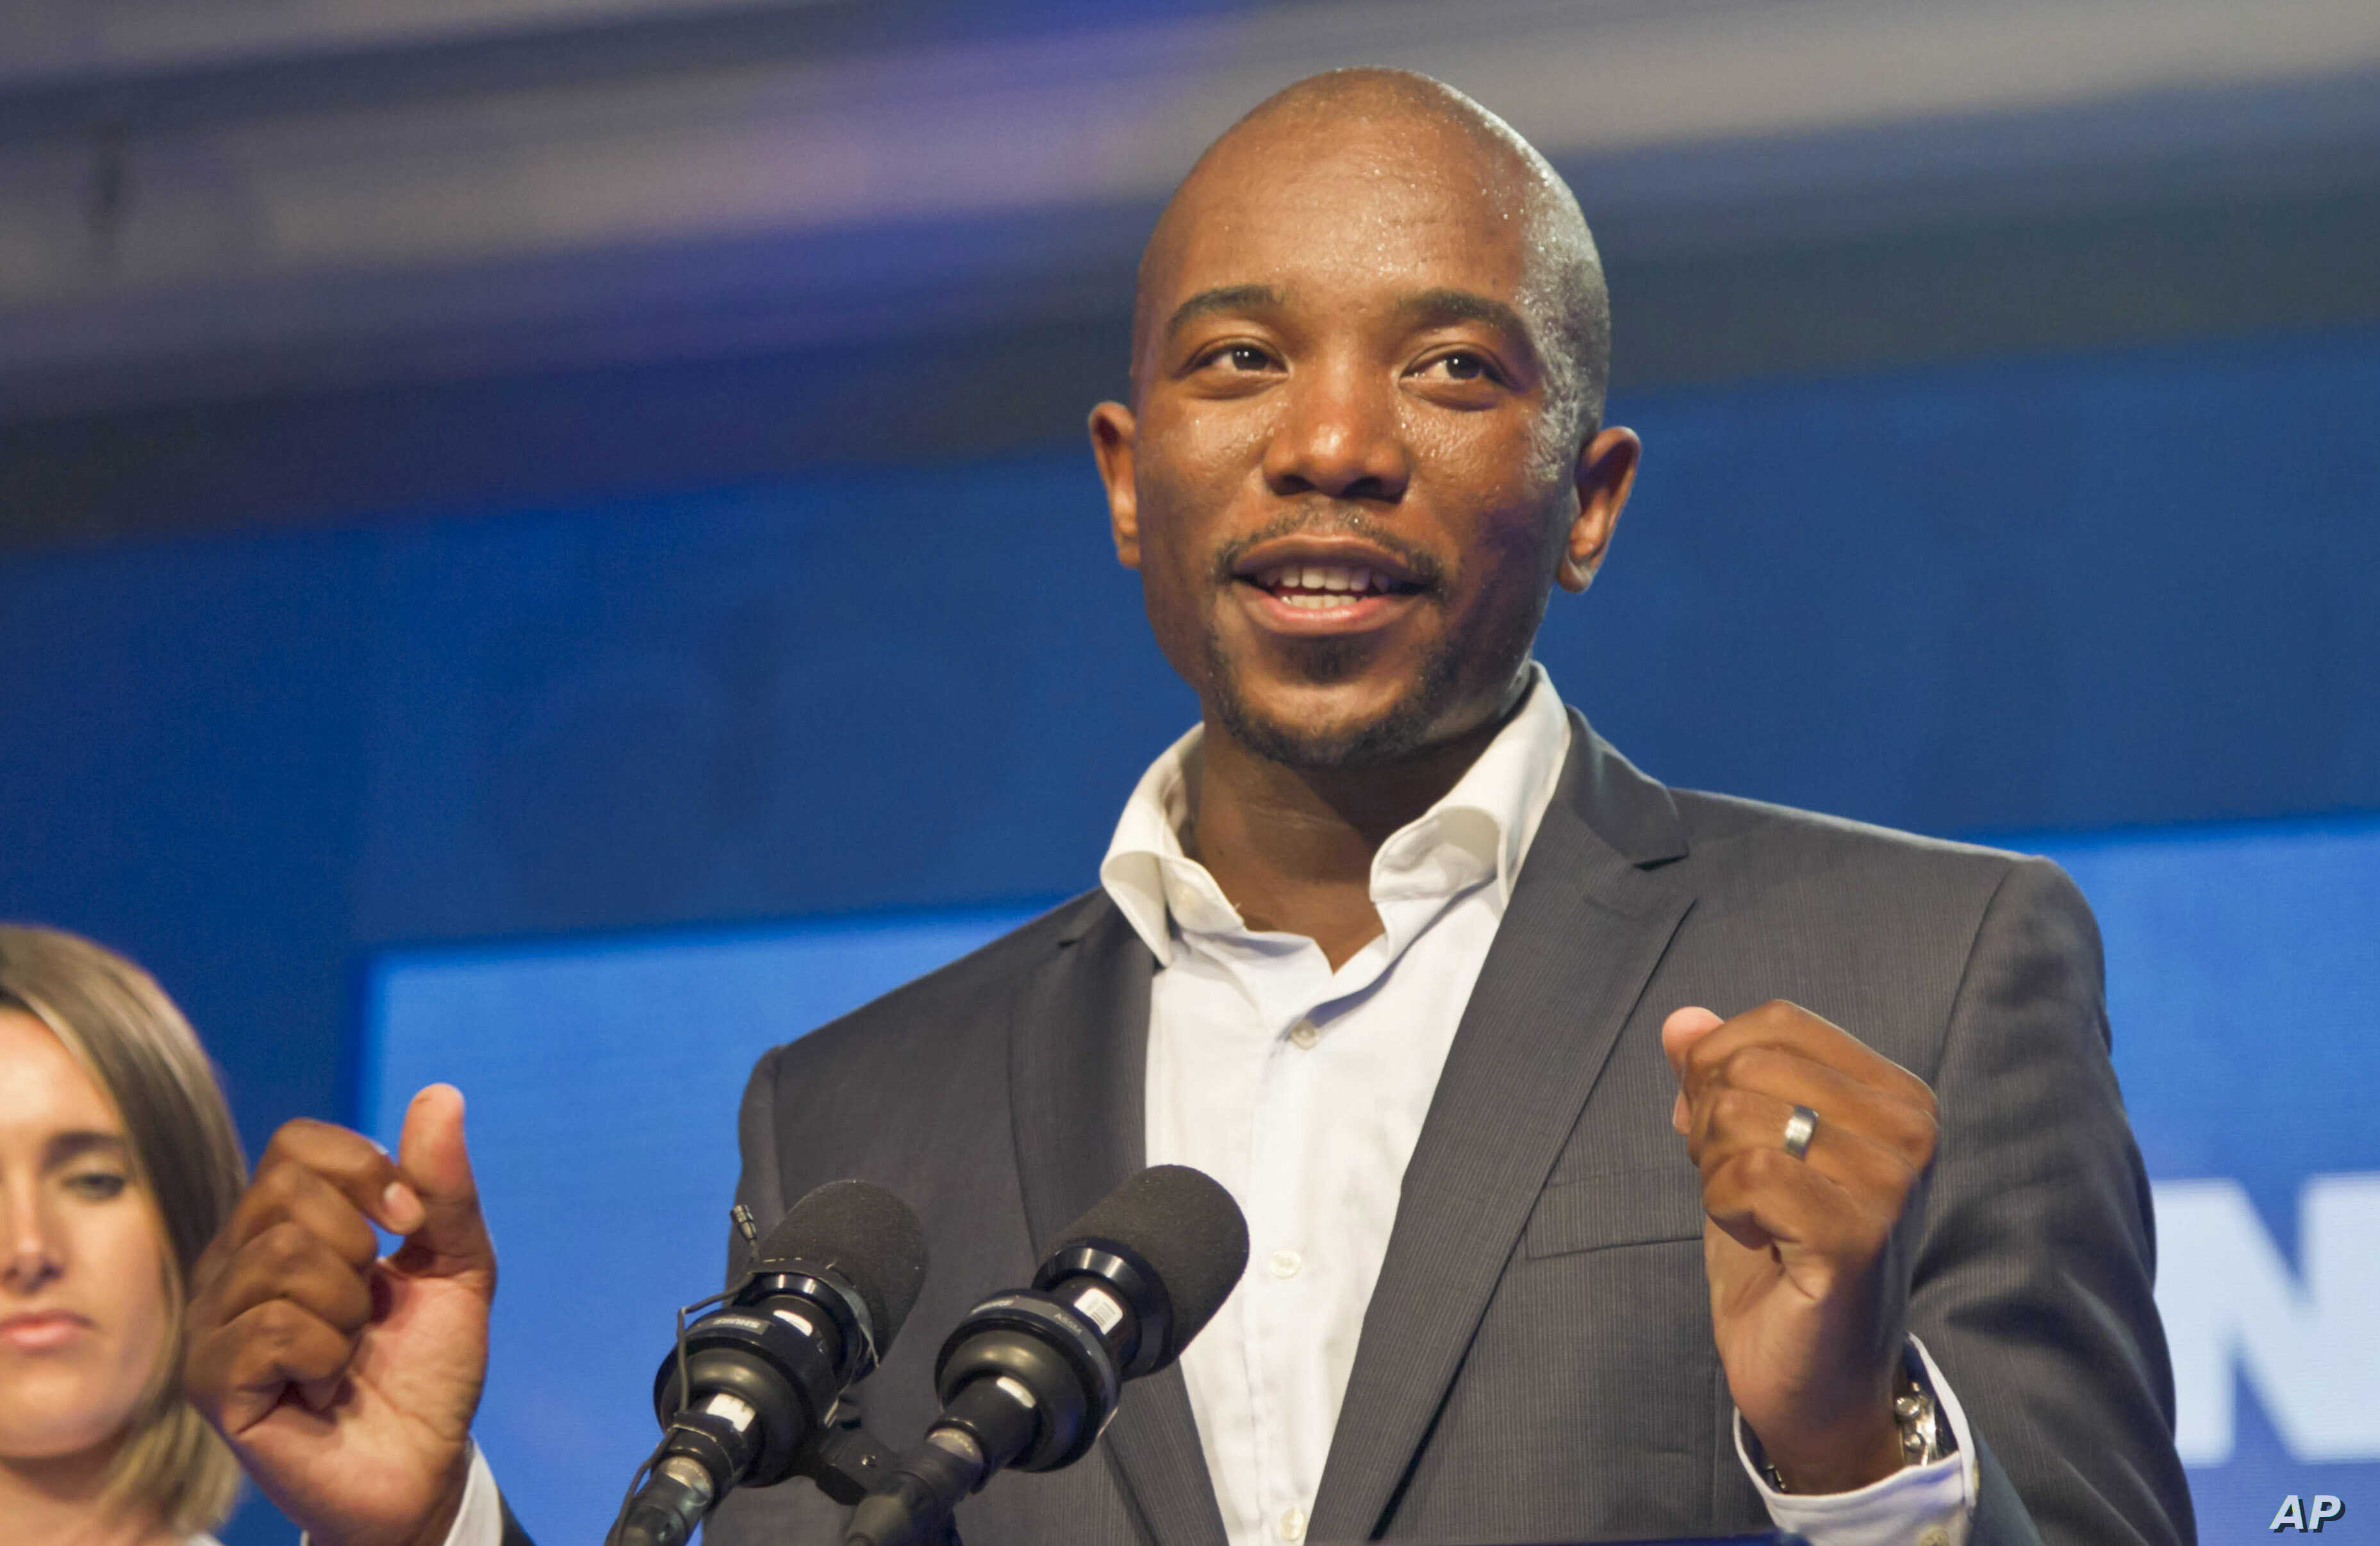 Newly elected Democratic Alliance (DA) party leader Mmusi Maimane, delivers his victory speech after being elected leader, May 10, 2015 in Port Elizabeth, South Africa.